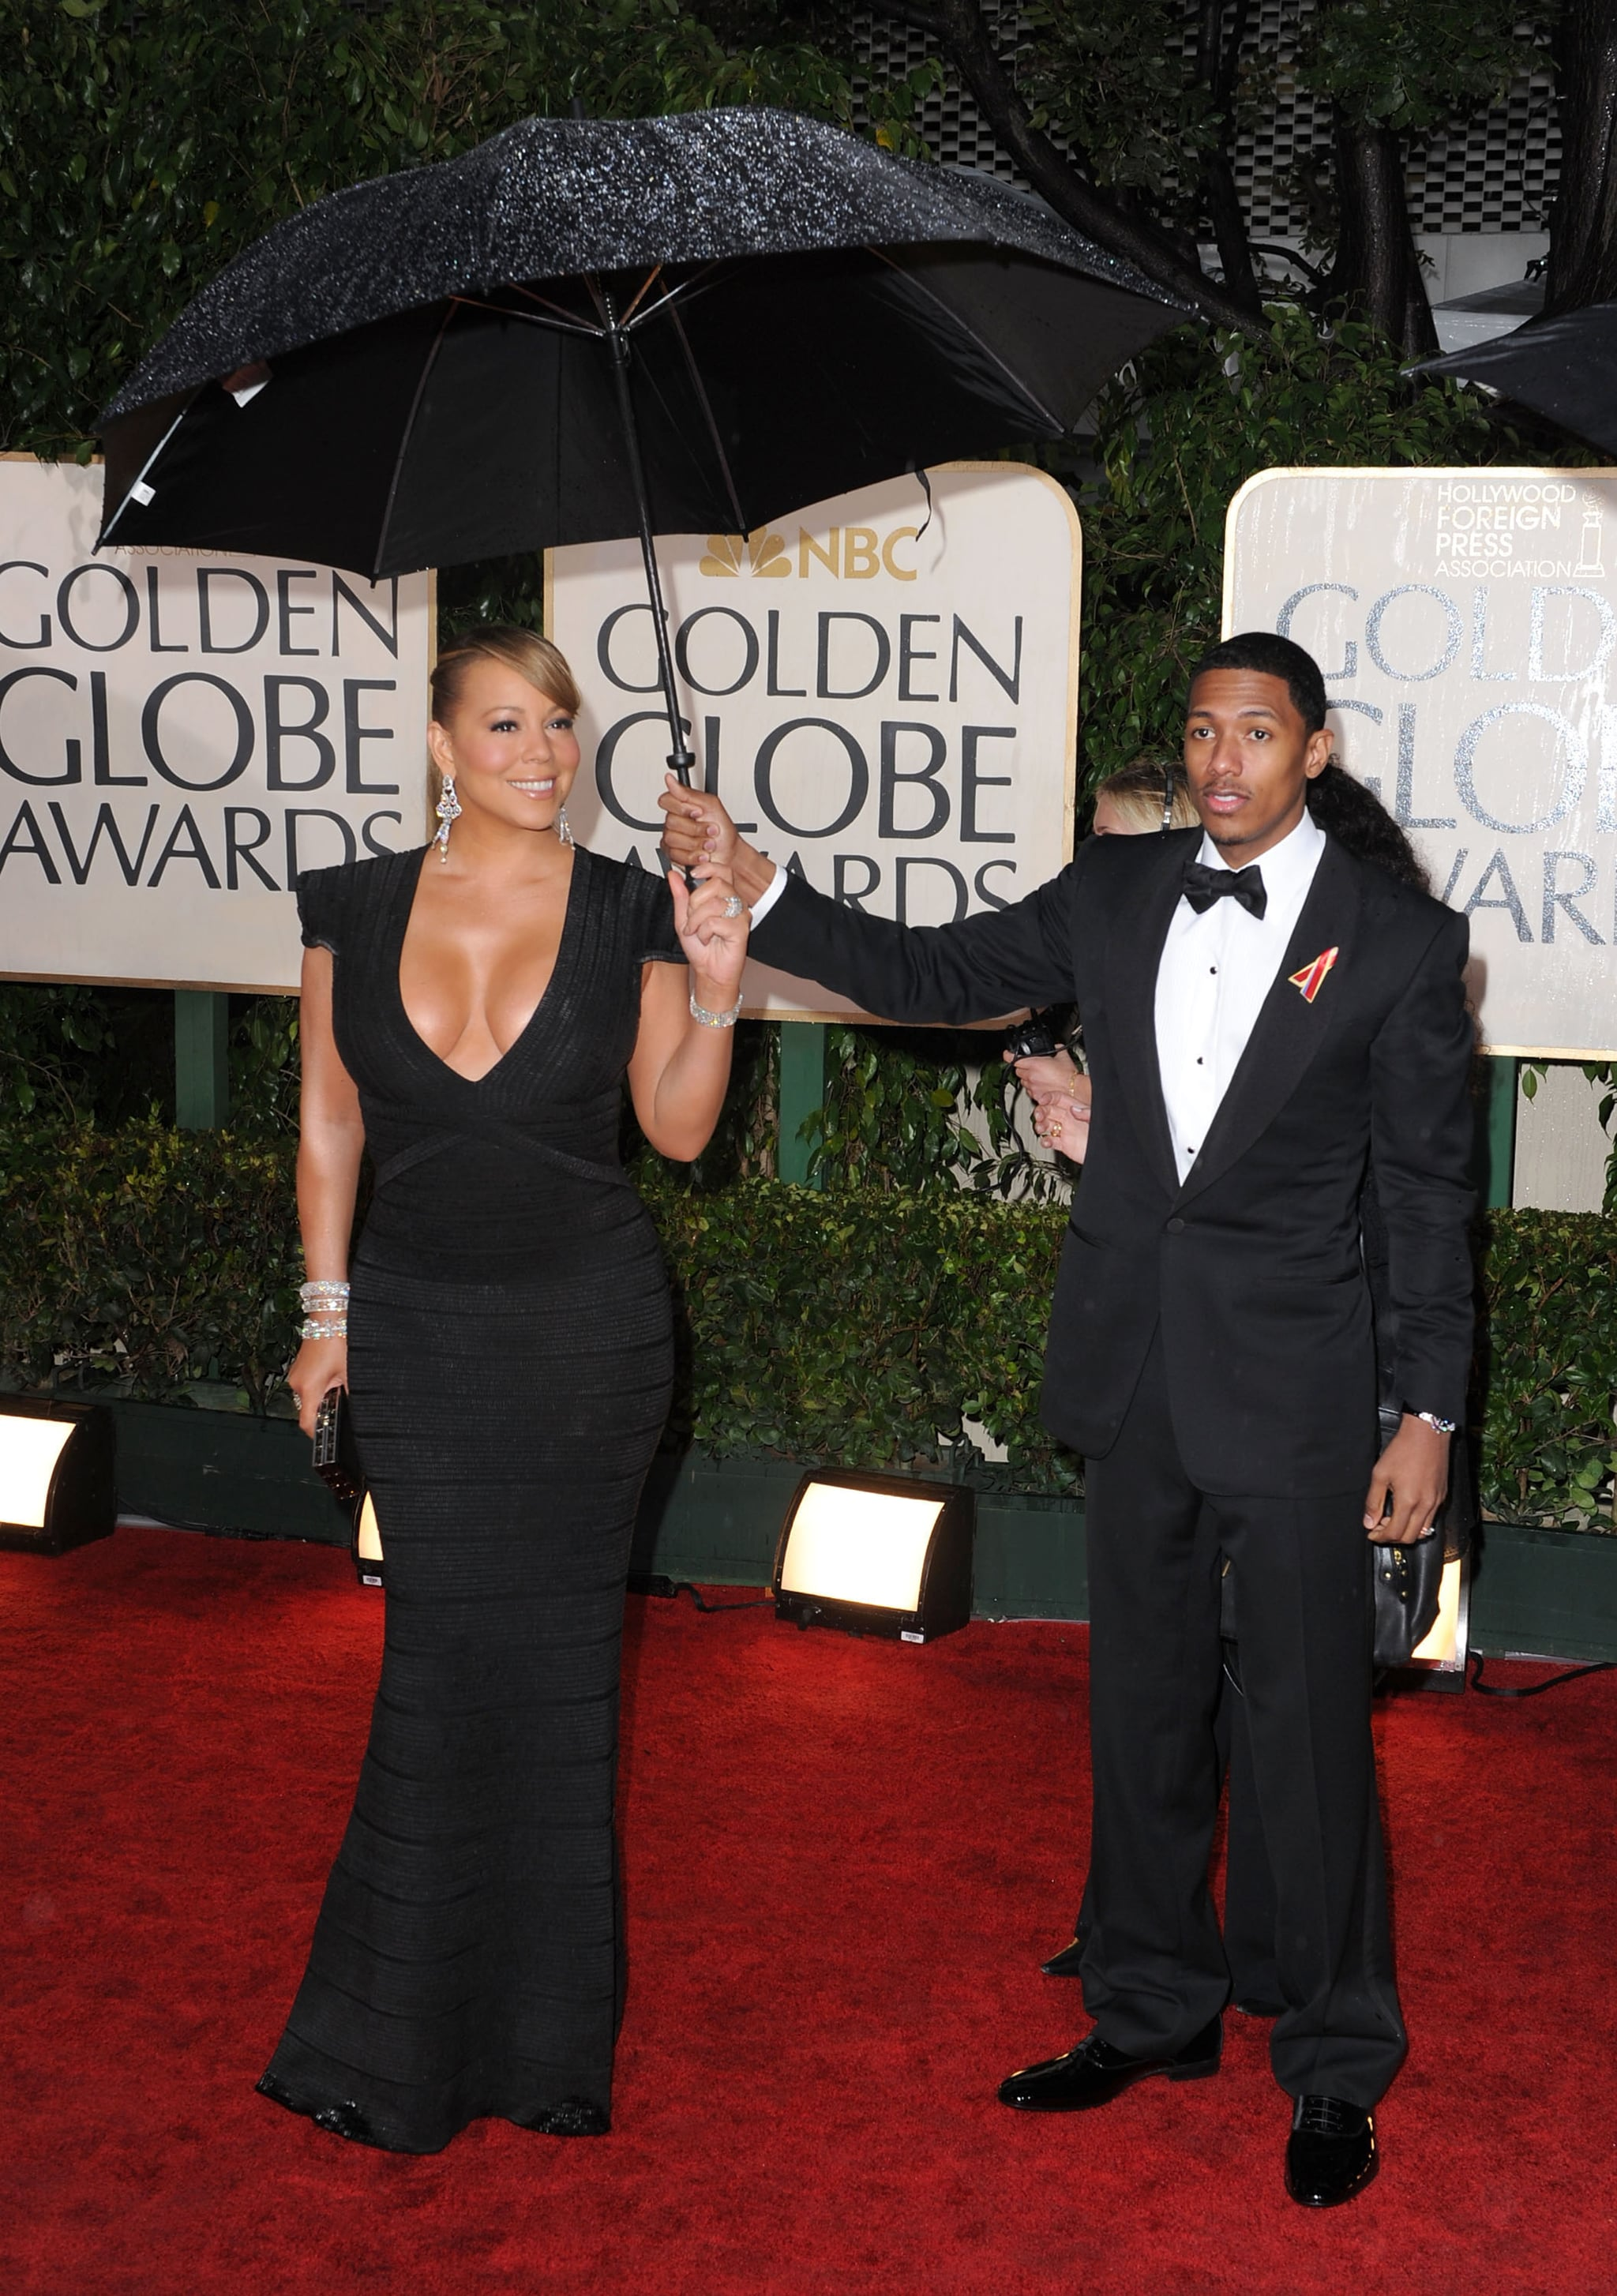 Nick Cannon held an umbrella out for his leading lady Mariah Carey at the January 2012 Golden Globes in LA.